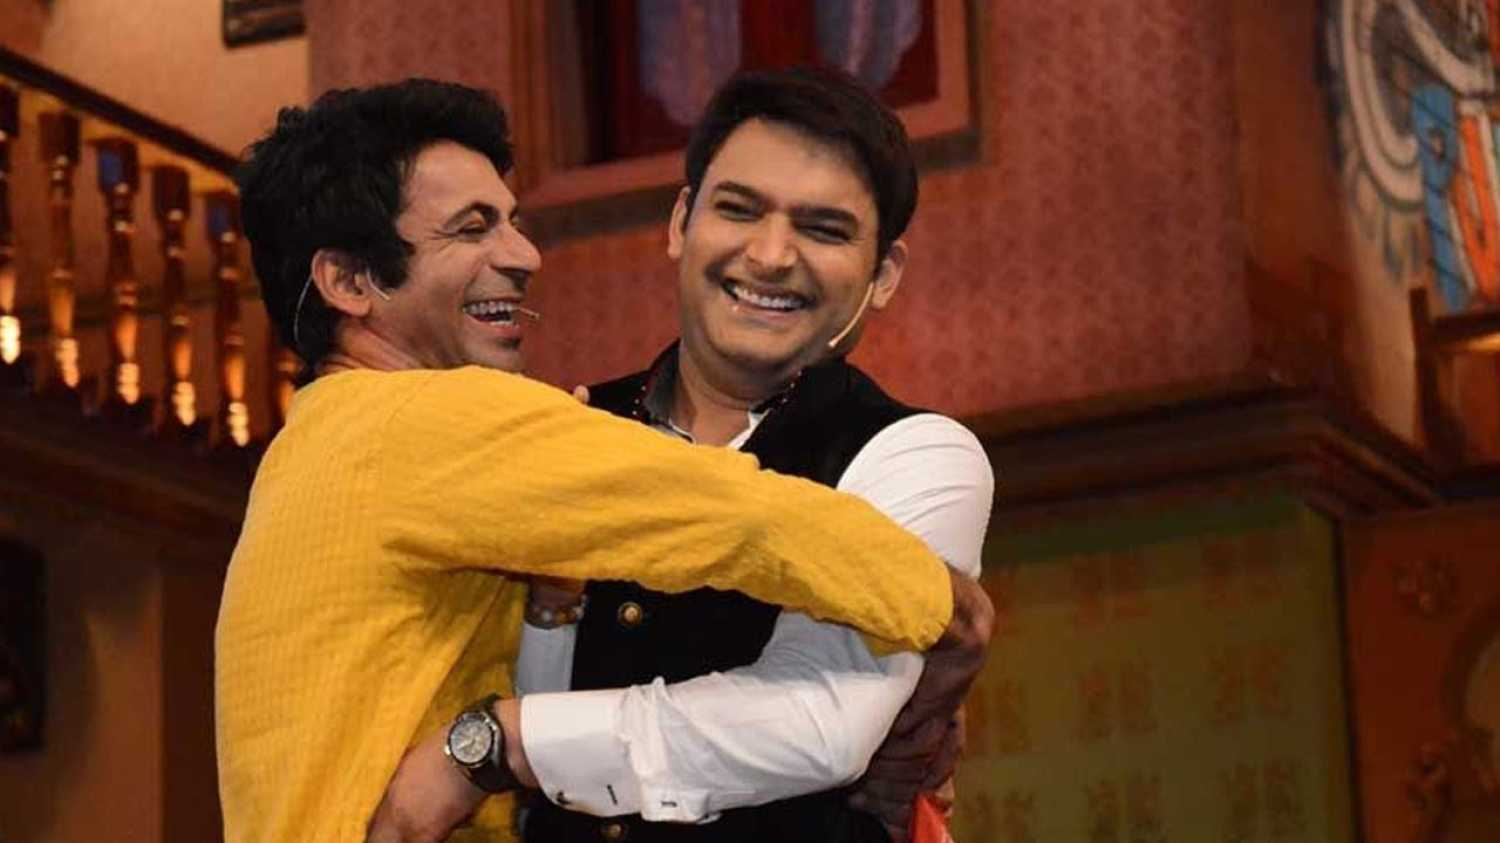 The Kapil Sharma Show to return for new season, comedian confirms. But what about Sunil Grover?